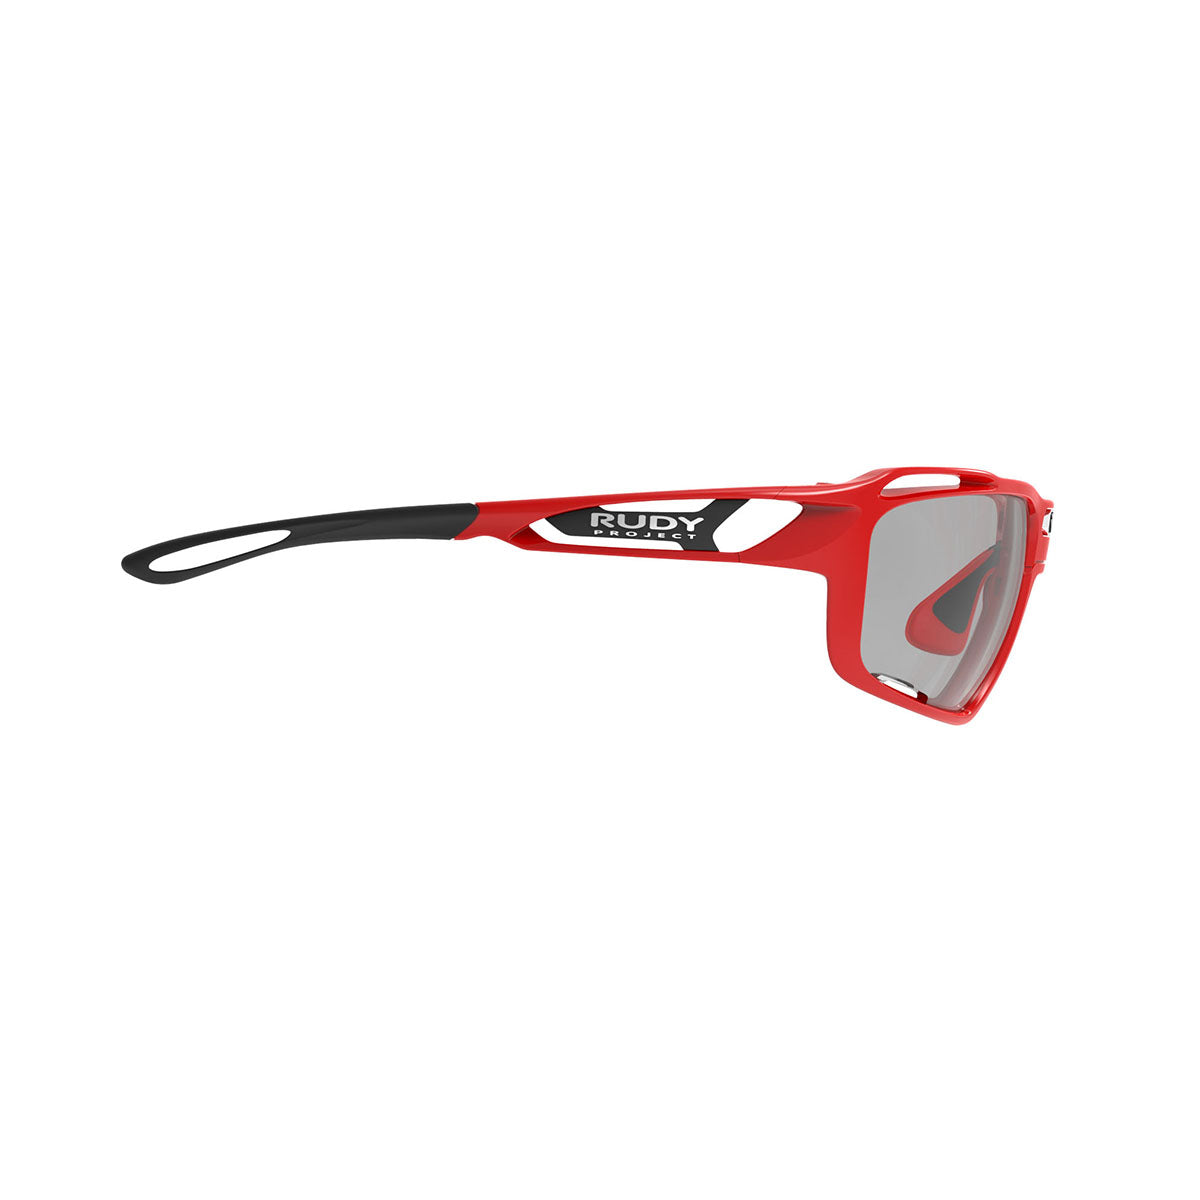 Rudy Project - Sintryx - frame color: Fire Red Gloss - lens color: ImpactX-2 Photochromic Clear to Black - Bumper Color:  - photo angle: Side Variant Hover Image